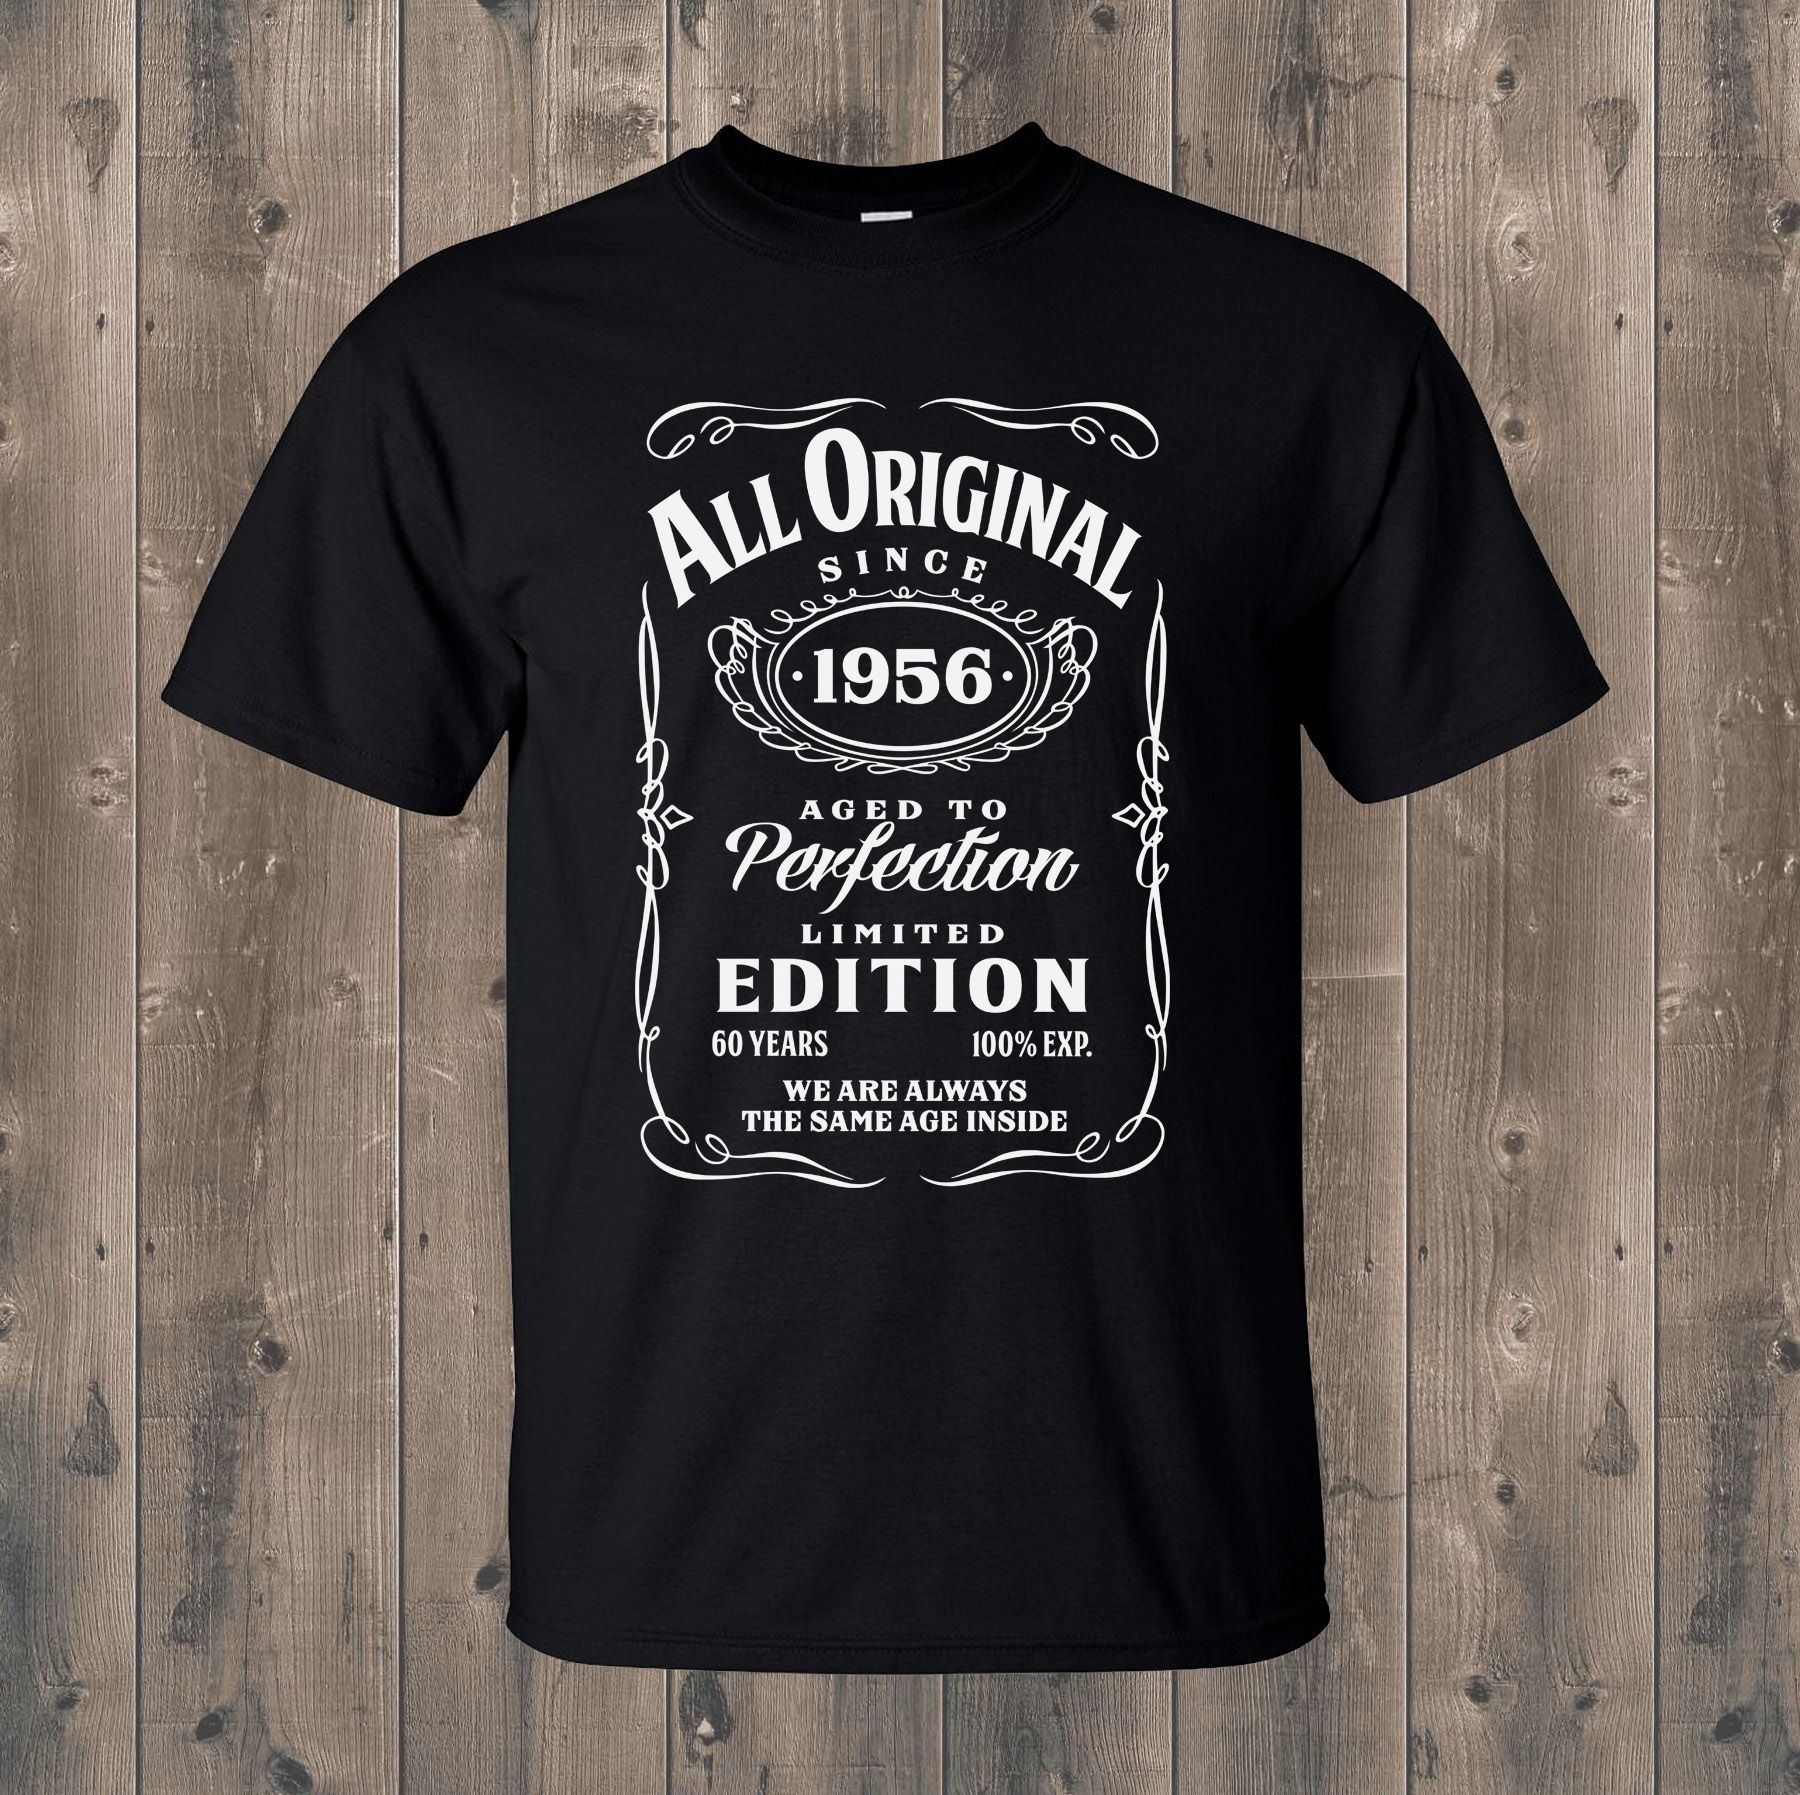 Having a special birthday? A vintage 60 or a fabulous 50? Whether you are buying this shirt as a gift for somebody special or wearing it yourself, we can help you personalised these birthday shirts to make yours or someone's birthday fun and special! Shop Now! #birthdaytshirts #personalisedtshirts #funnytshirts